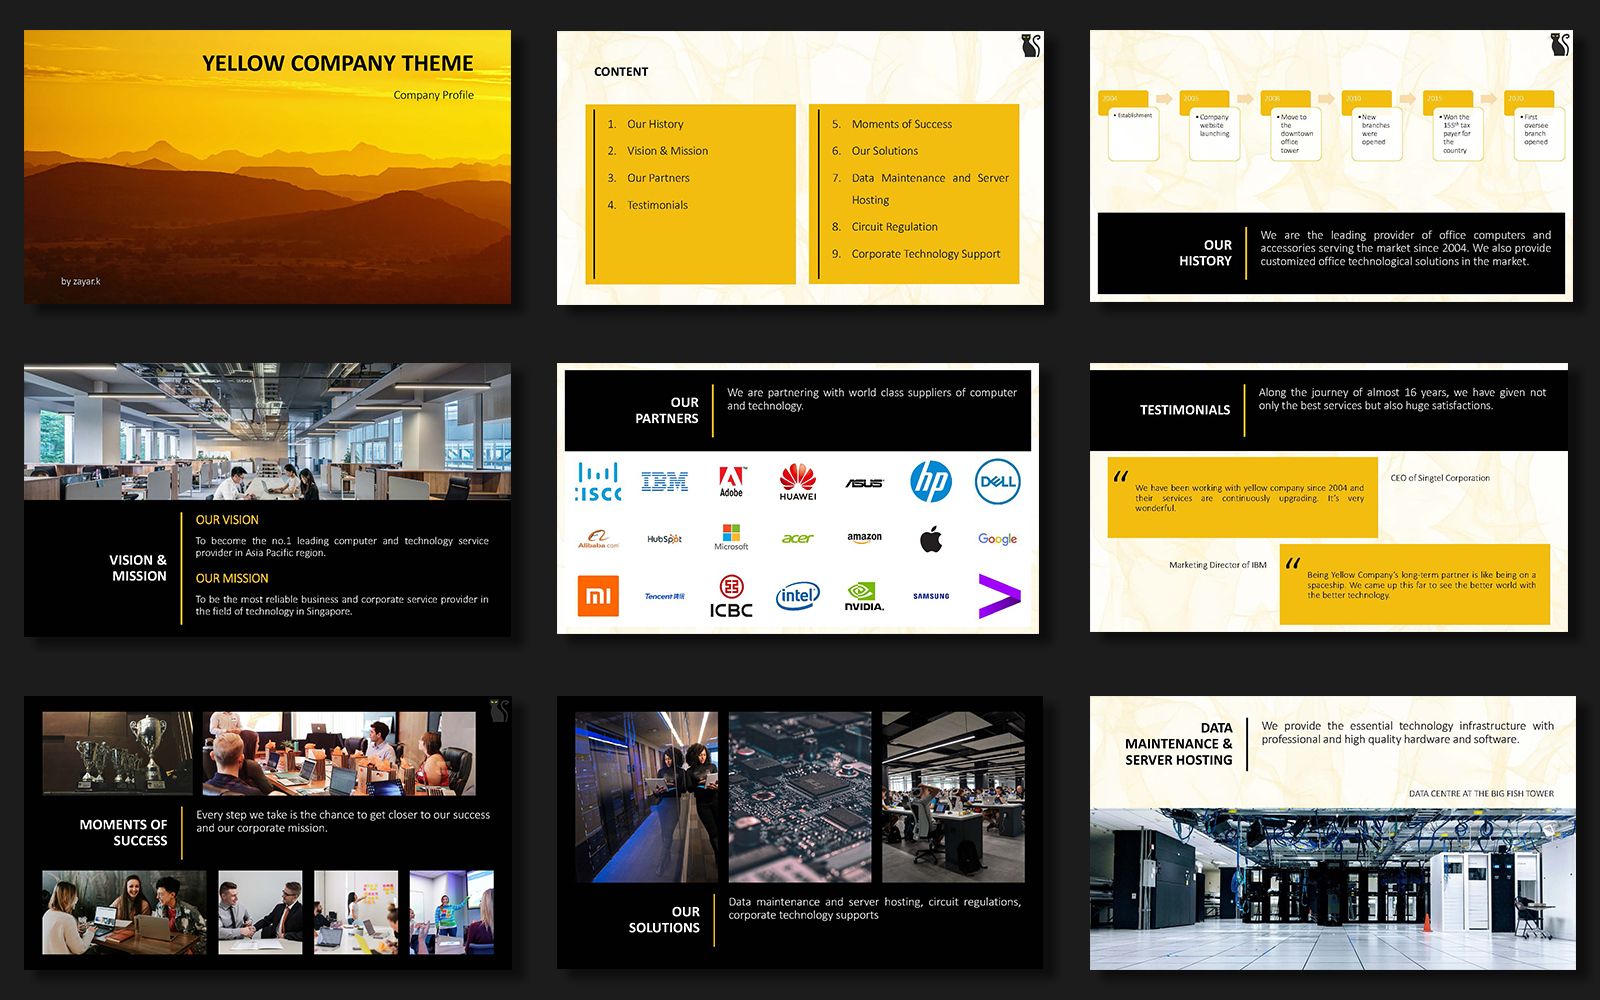 Smart Yellow Company Theme PowerPoint Template